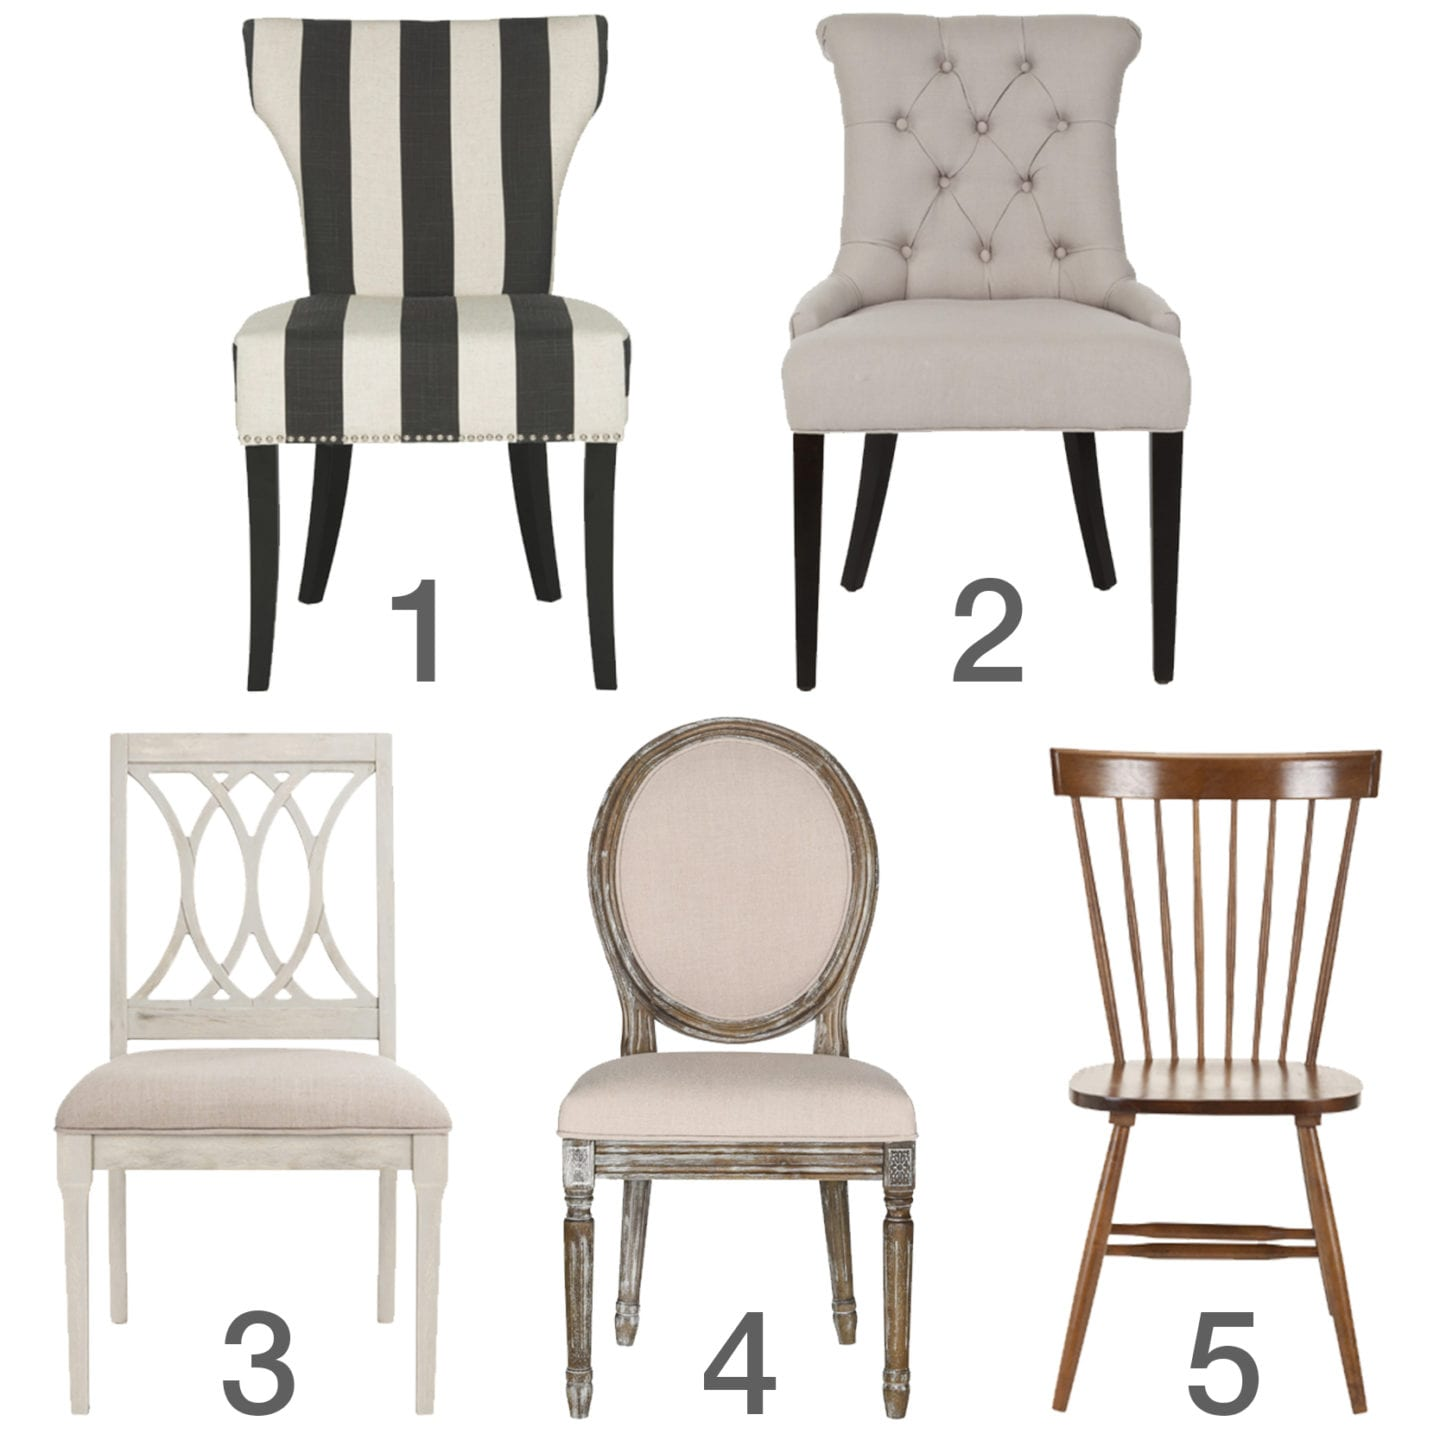 Dining Chair Back Styles